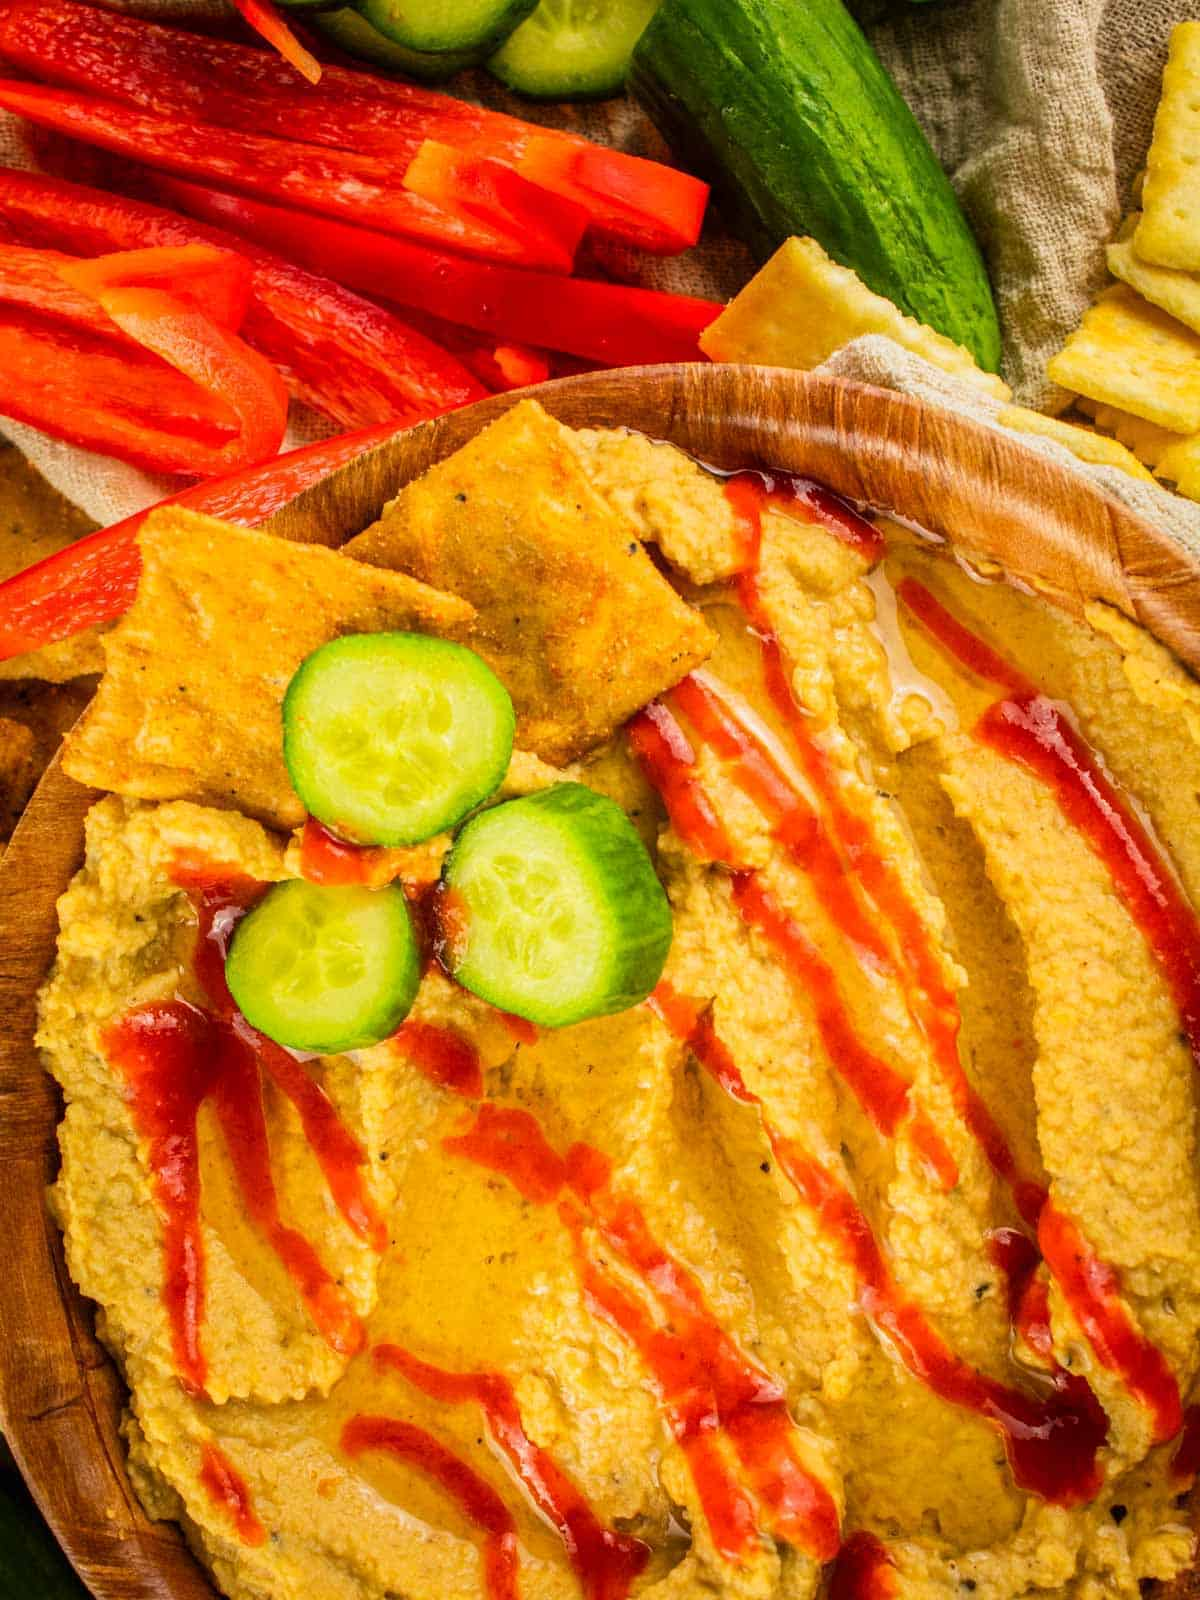 hummus drizzled with sriracha in a wooden bowl with sliced cucumbers and crackers dipped in it